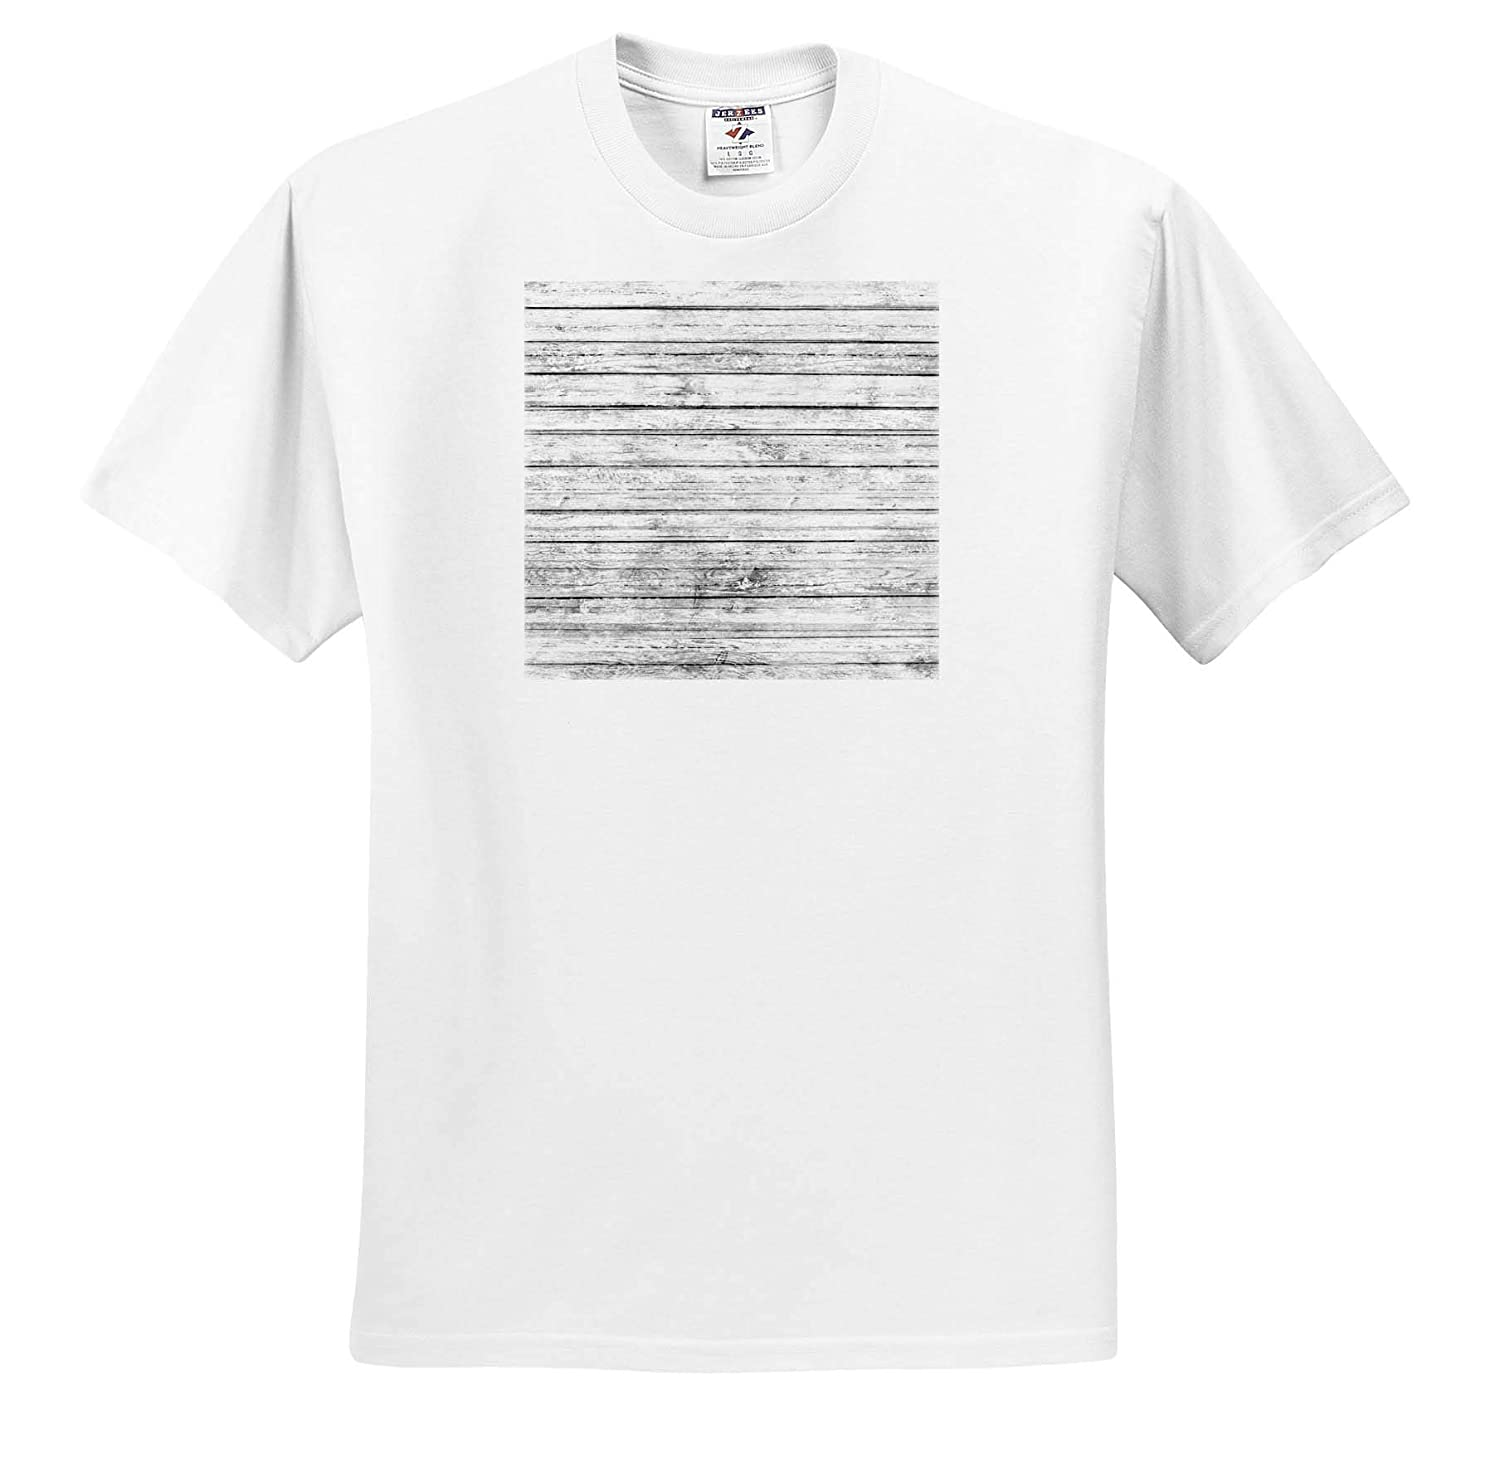 Textures Adult T-Shirt XL Country White Image of Wood ts/_316265 3dRose Anne Marie Baugh